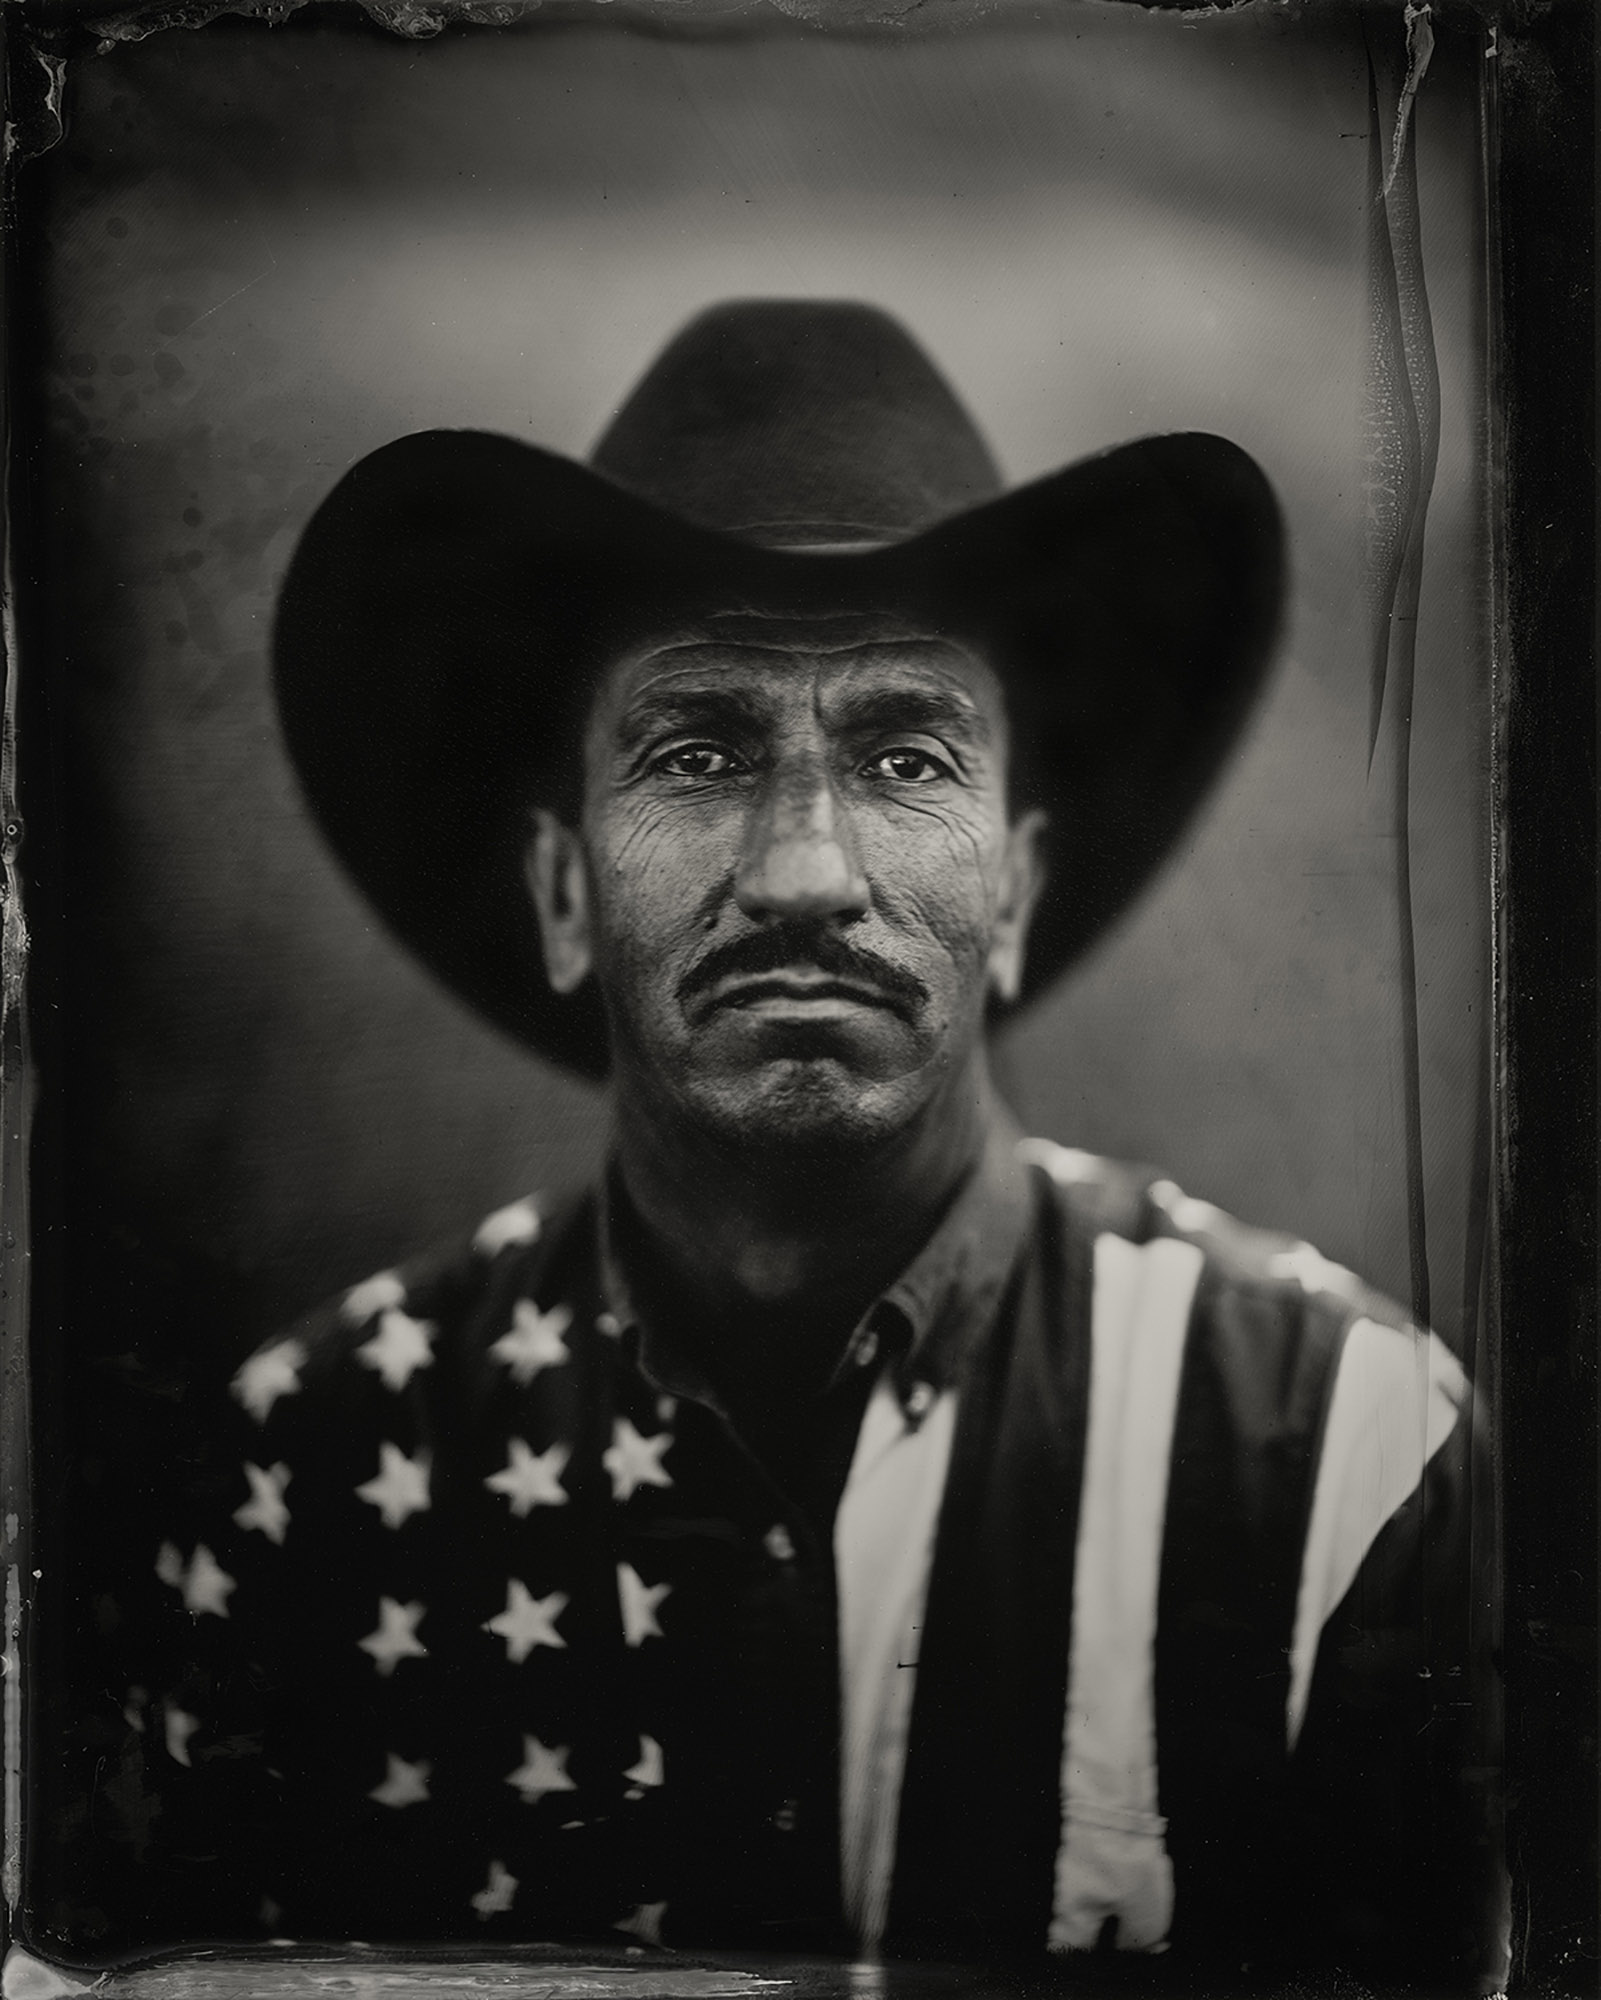 "Luis from Quincy WA. - By: Angel Colmenares  chemicalangel.com   I've worked as a photographer in New York and a Cinematographer in Los Angeles for ten years, shot films, commercials, and music videos, but now with Wet Plate,  I learned about Wet Plate in early 2016, I purchased an old Ansco 8x10 camera, found a Dallmeyer lens on eBay, searched for a workshop, and turned an old work trailer into a darkroom.  I met Luis when I was looking to photograph another group of people that are close to my heart, ""Immigrants"". Since I'm a immigrant from Cuba that left because of political reasons, I knew that I wanted to capture the people that cross the border searching for a better life, the people that work the fields, the illegal aliens that take work that no other American would.  I want to photograph people that matter, even when they believe they don't matter, people that struggle for a cause, no matter what cause, people that stand up to adversity, the people that makes America work everyday, and are not recognized by their efforts or creativity, just real people."